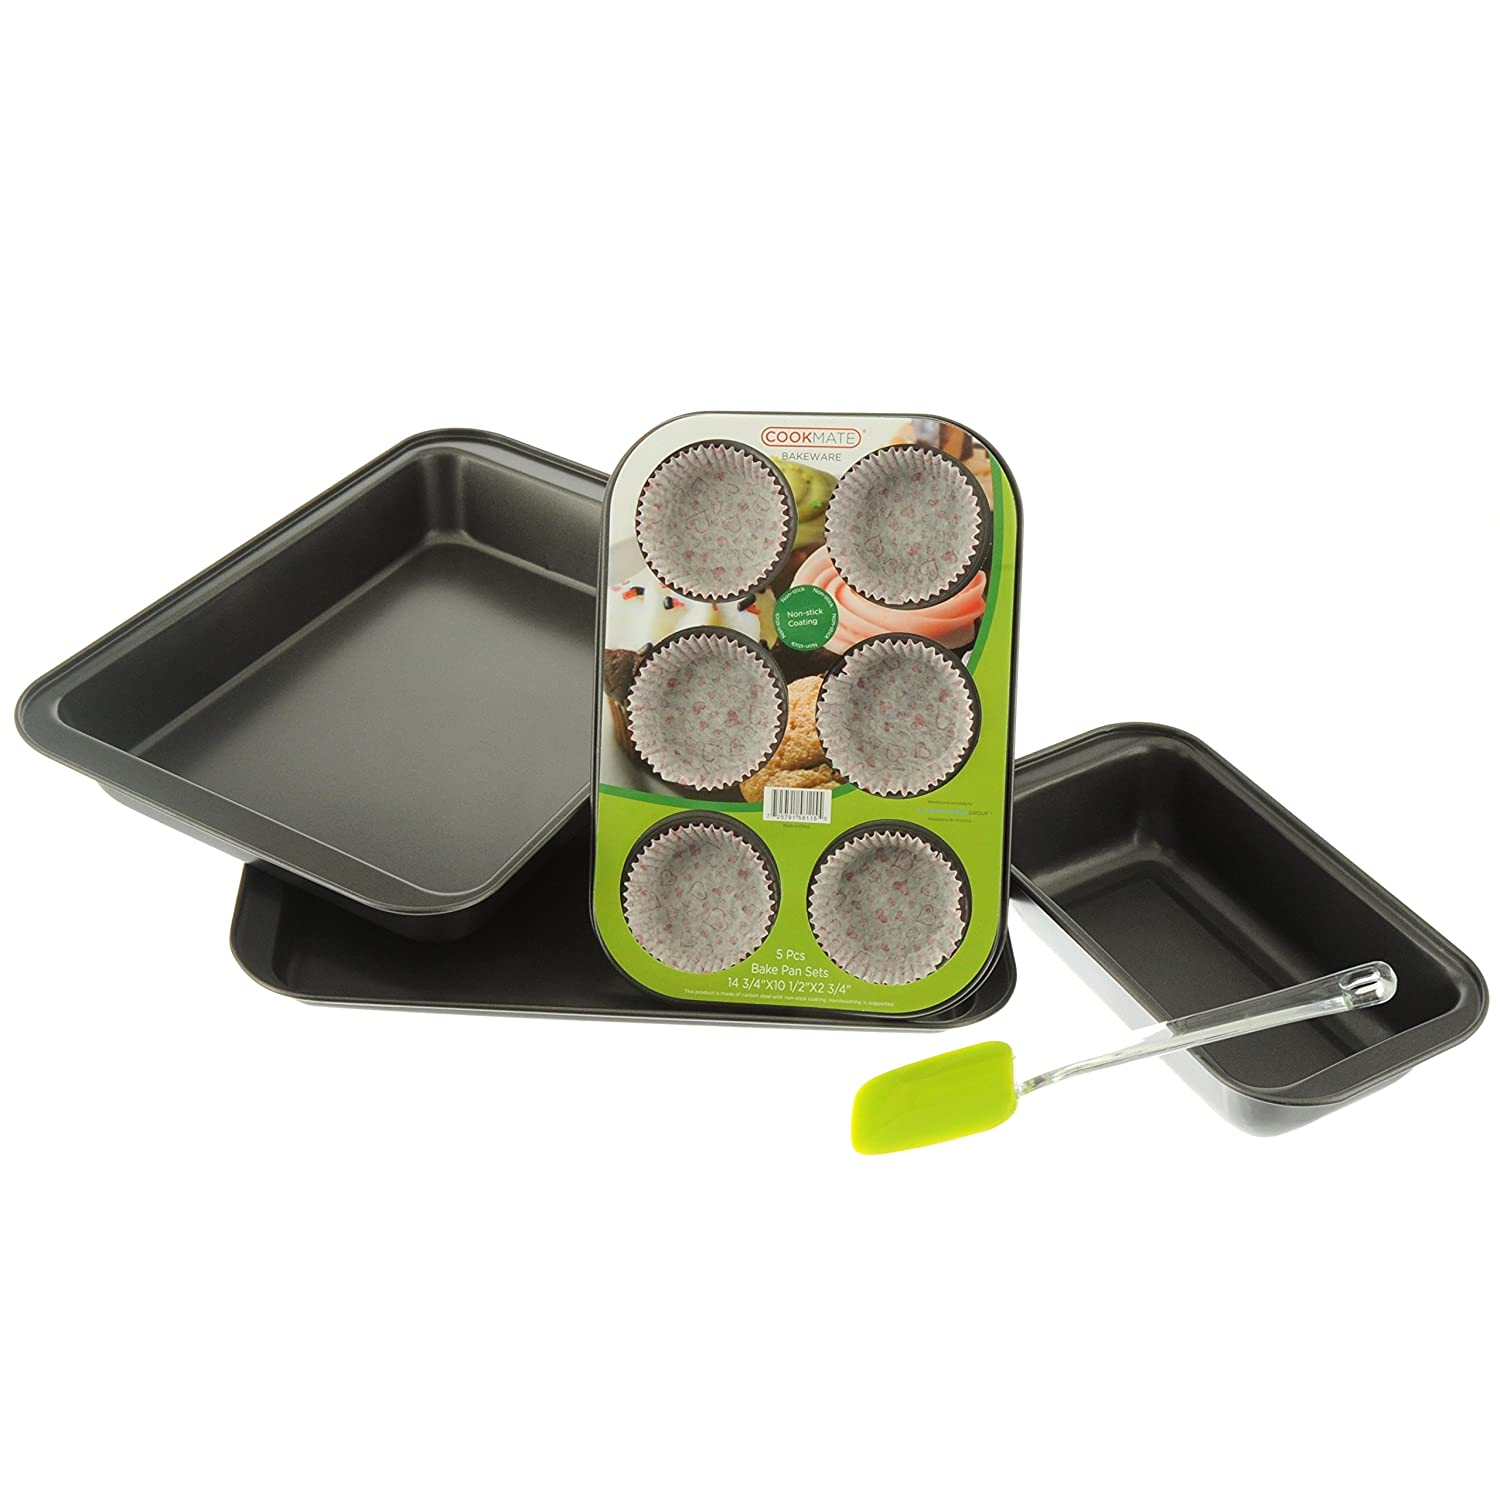 Cookmate 5-Piece Bakeware Gift Set, Charcoal Gray, 4 Pans & Rubber Spatula, by Unity Promo Power Group